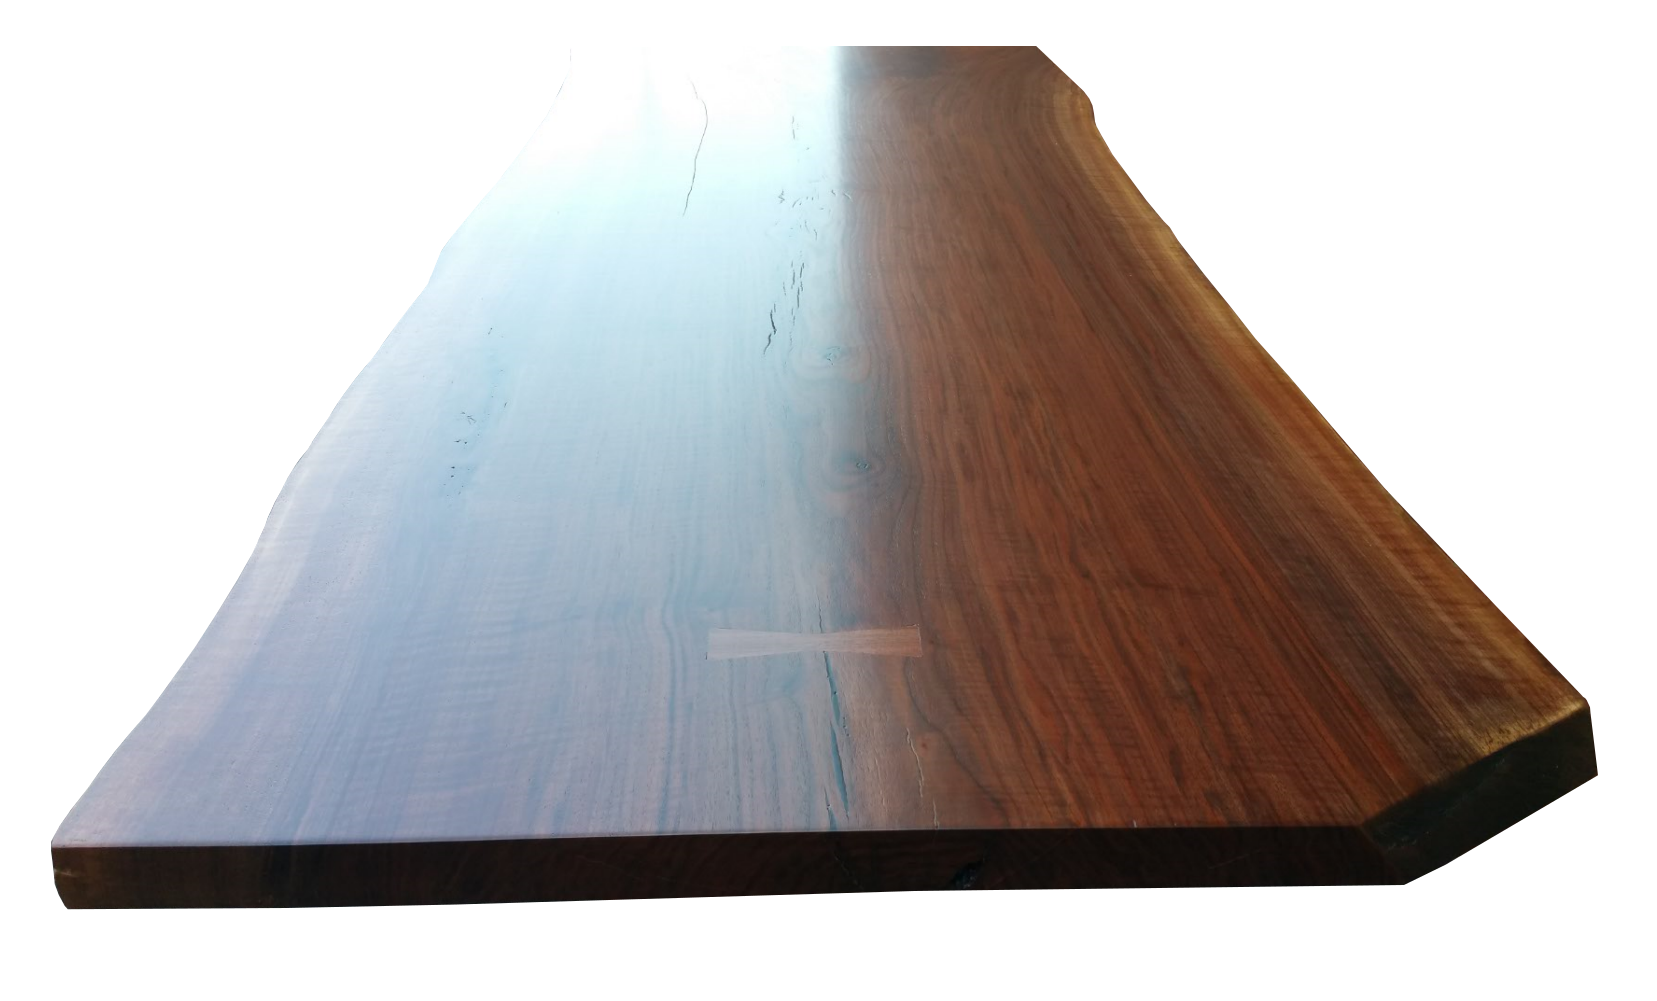 American Walnut slab table cast bronze table legs brass table legs